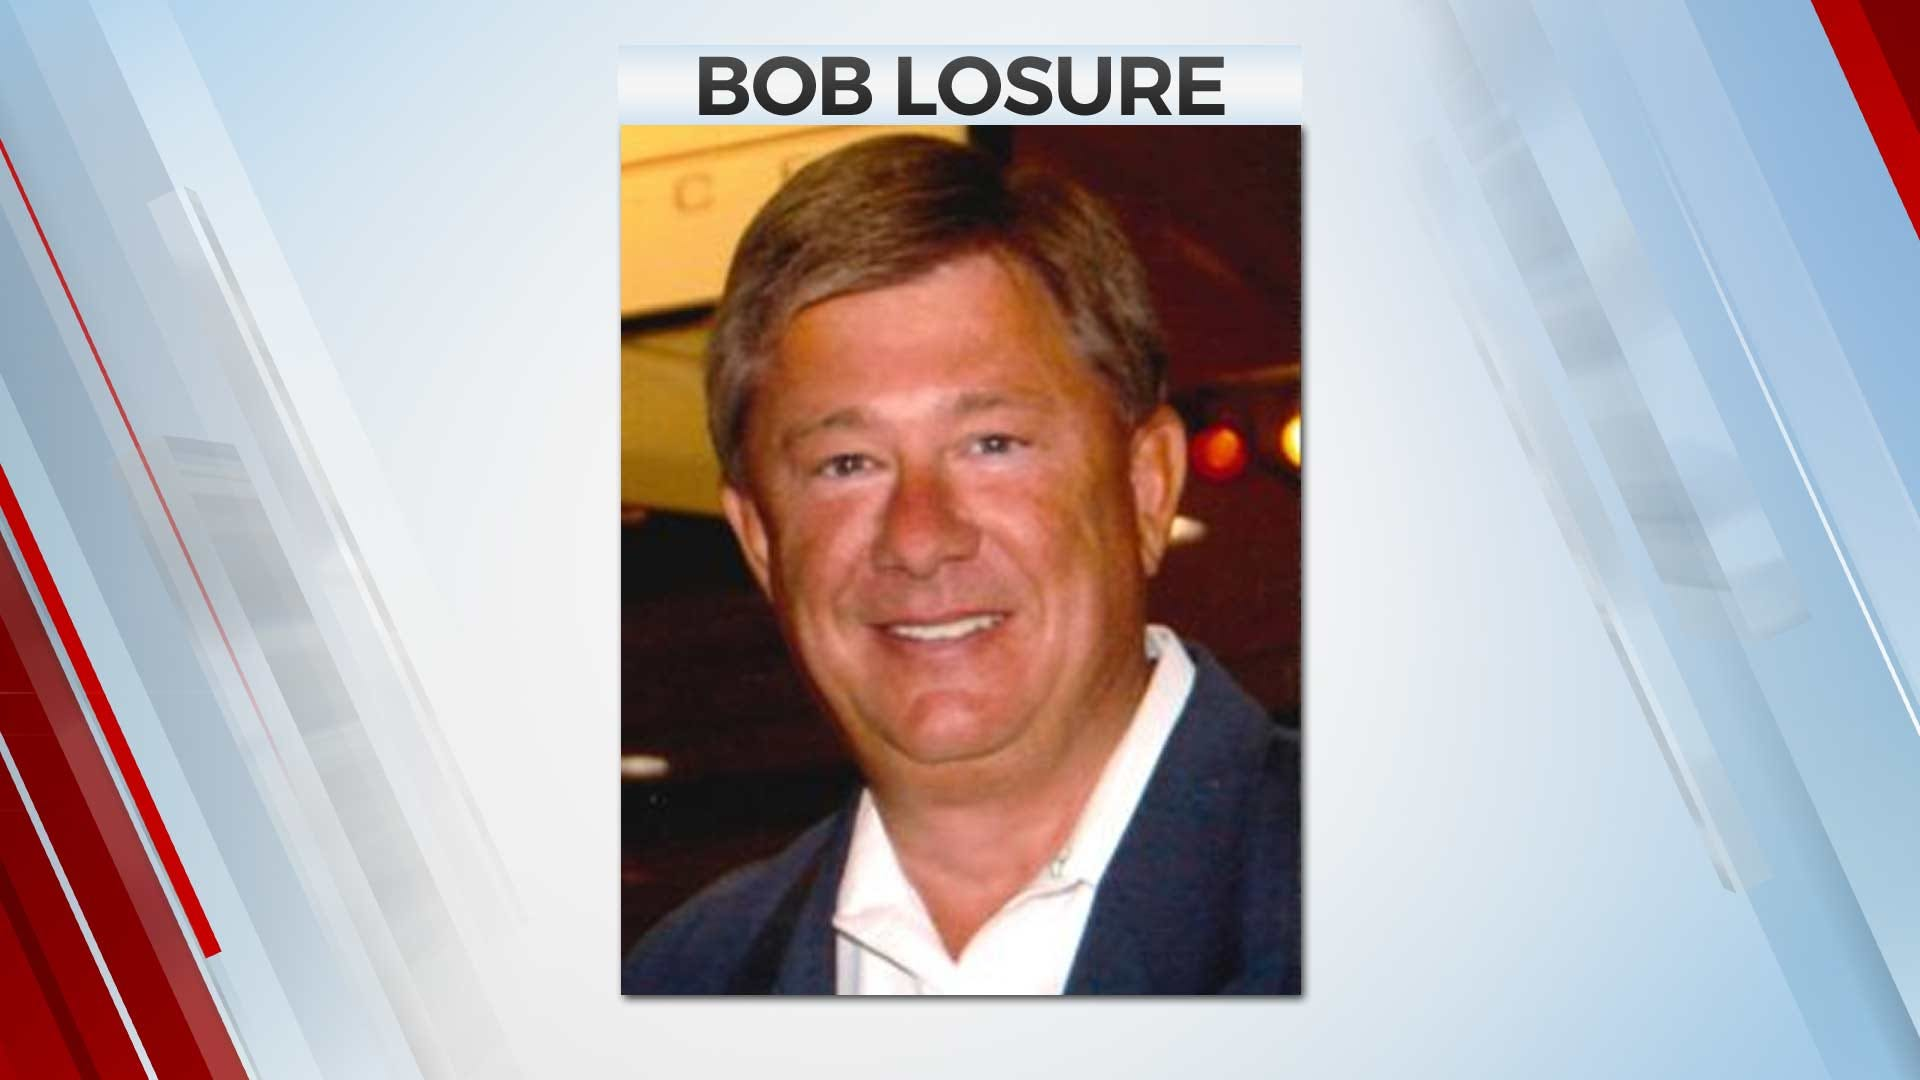 Former CNN, KOTV Anchor Bob Losure Dies